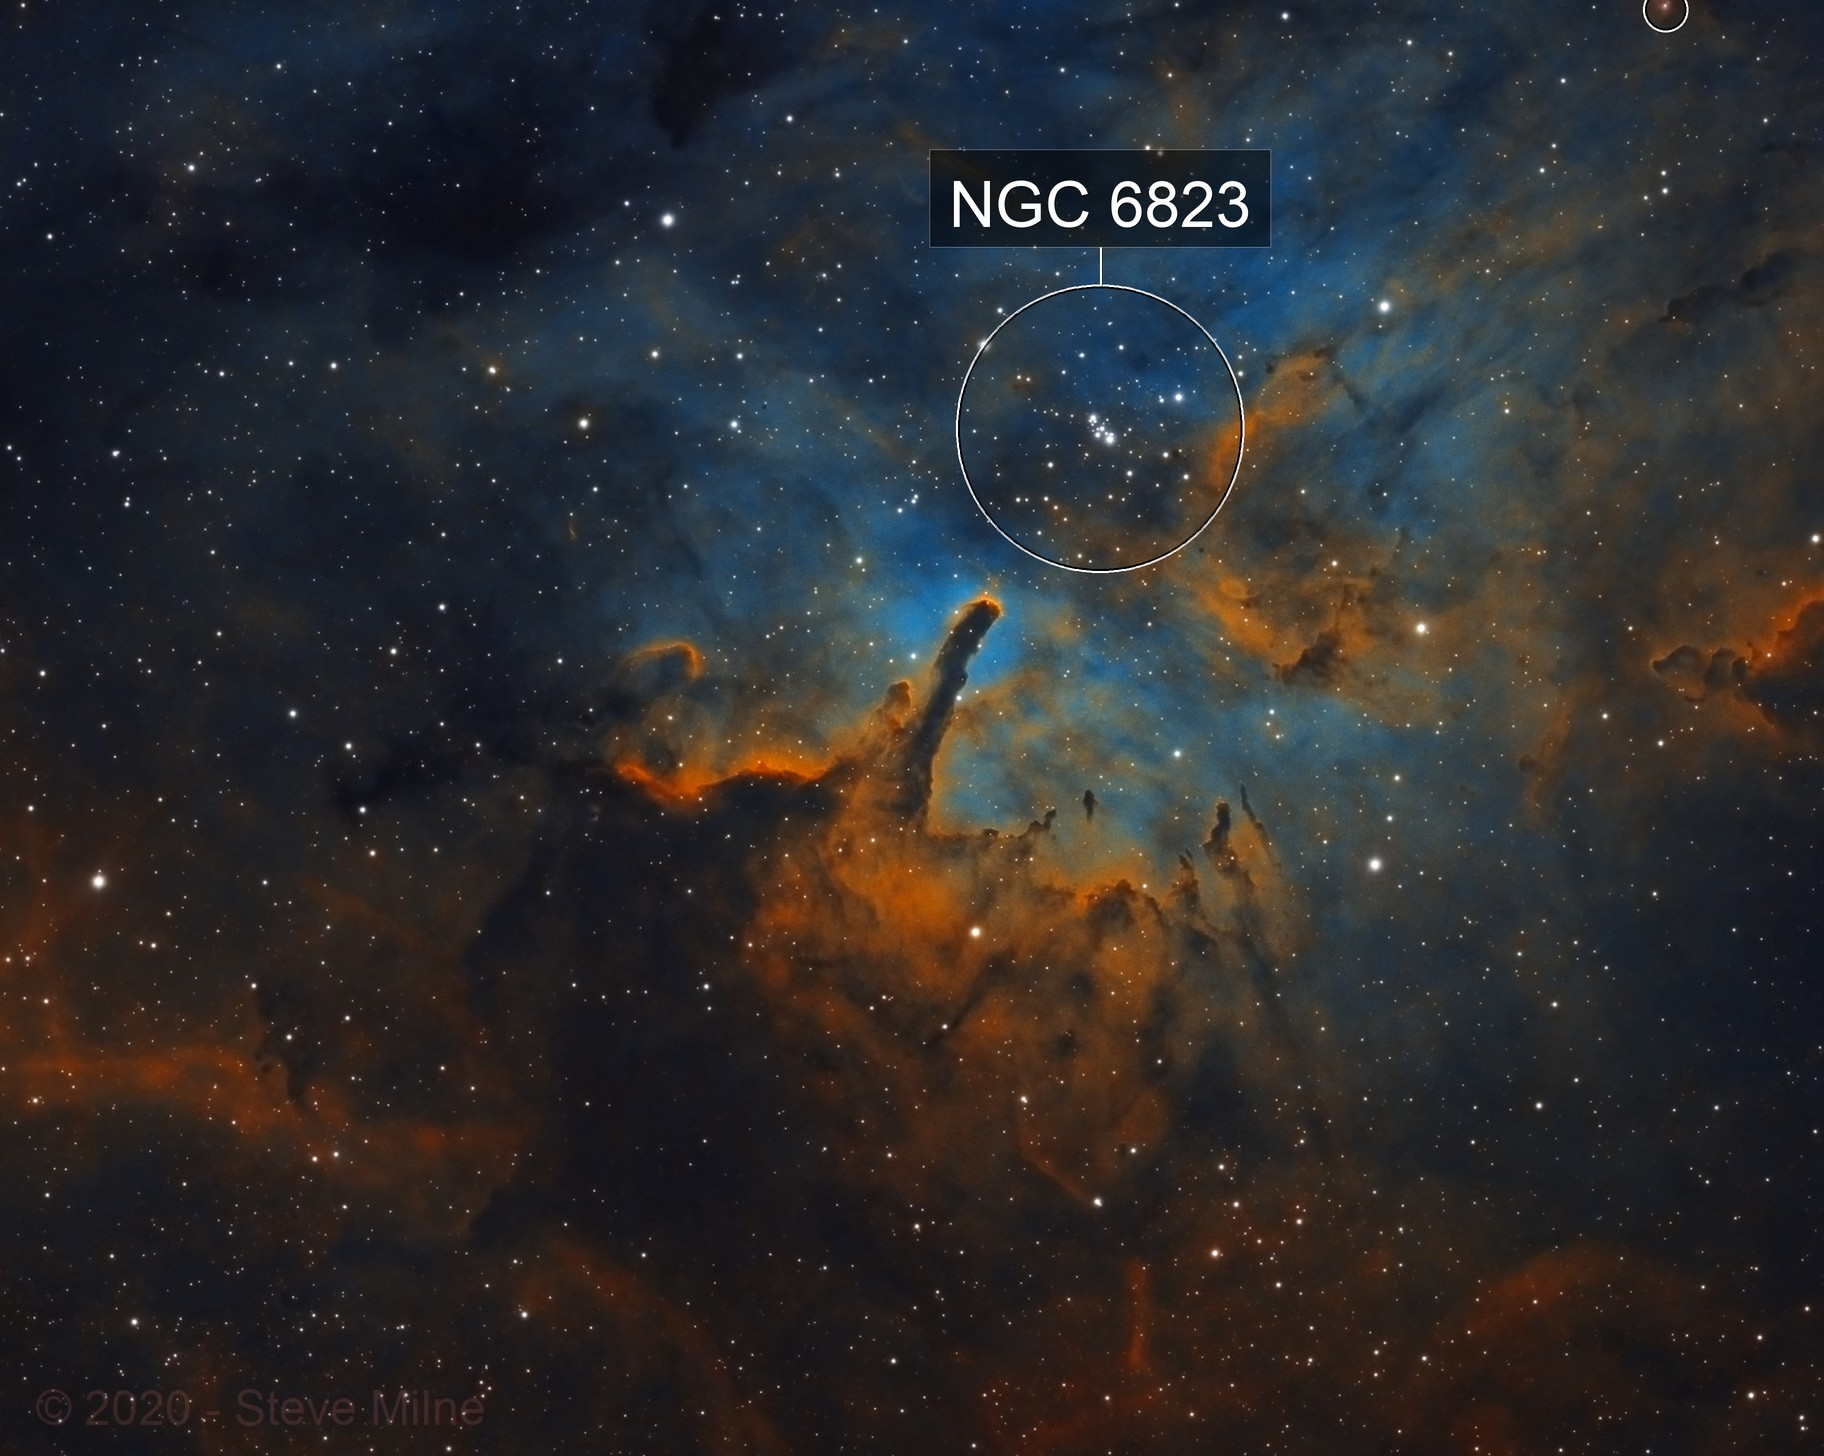 NGC 6820 and NGC 6823 in Vulpecula